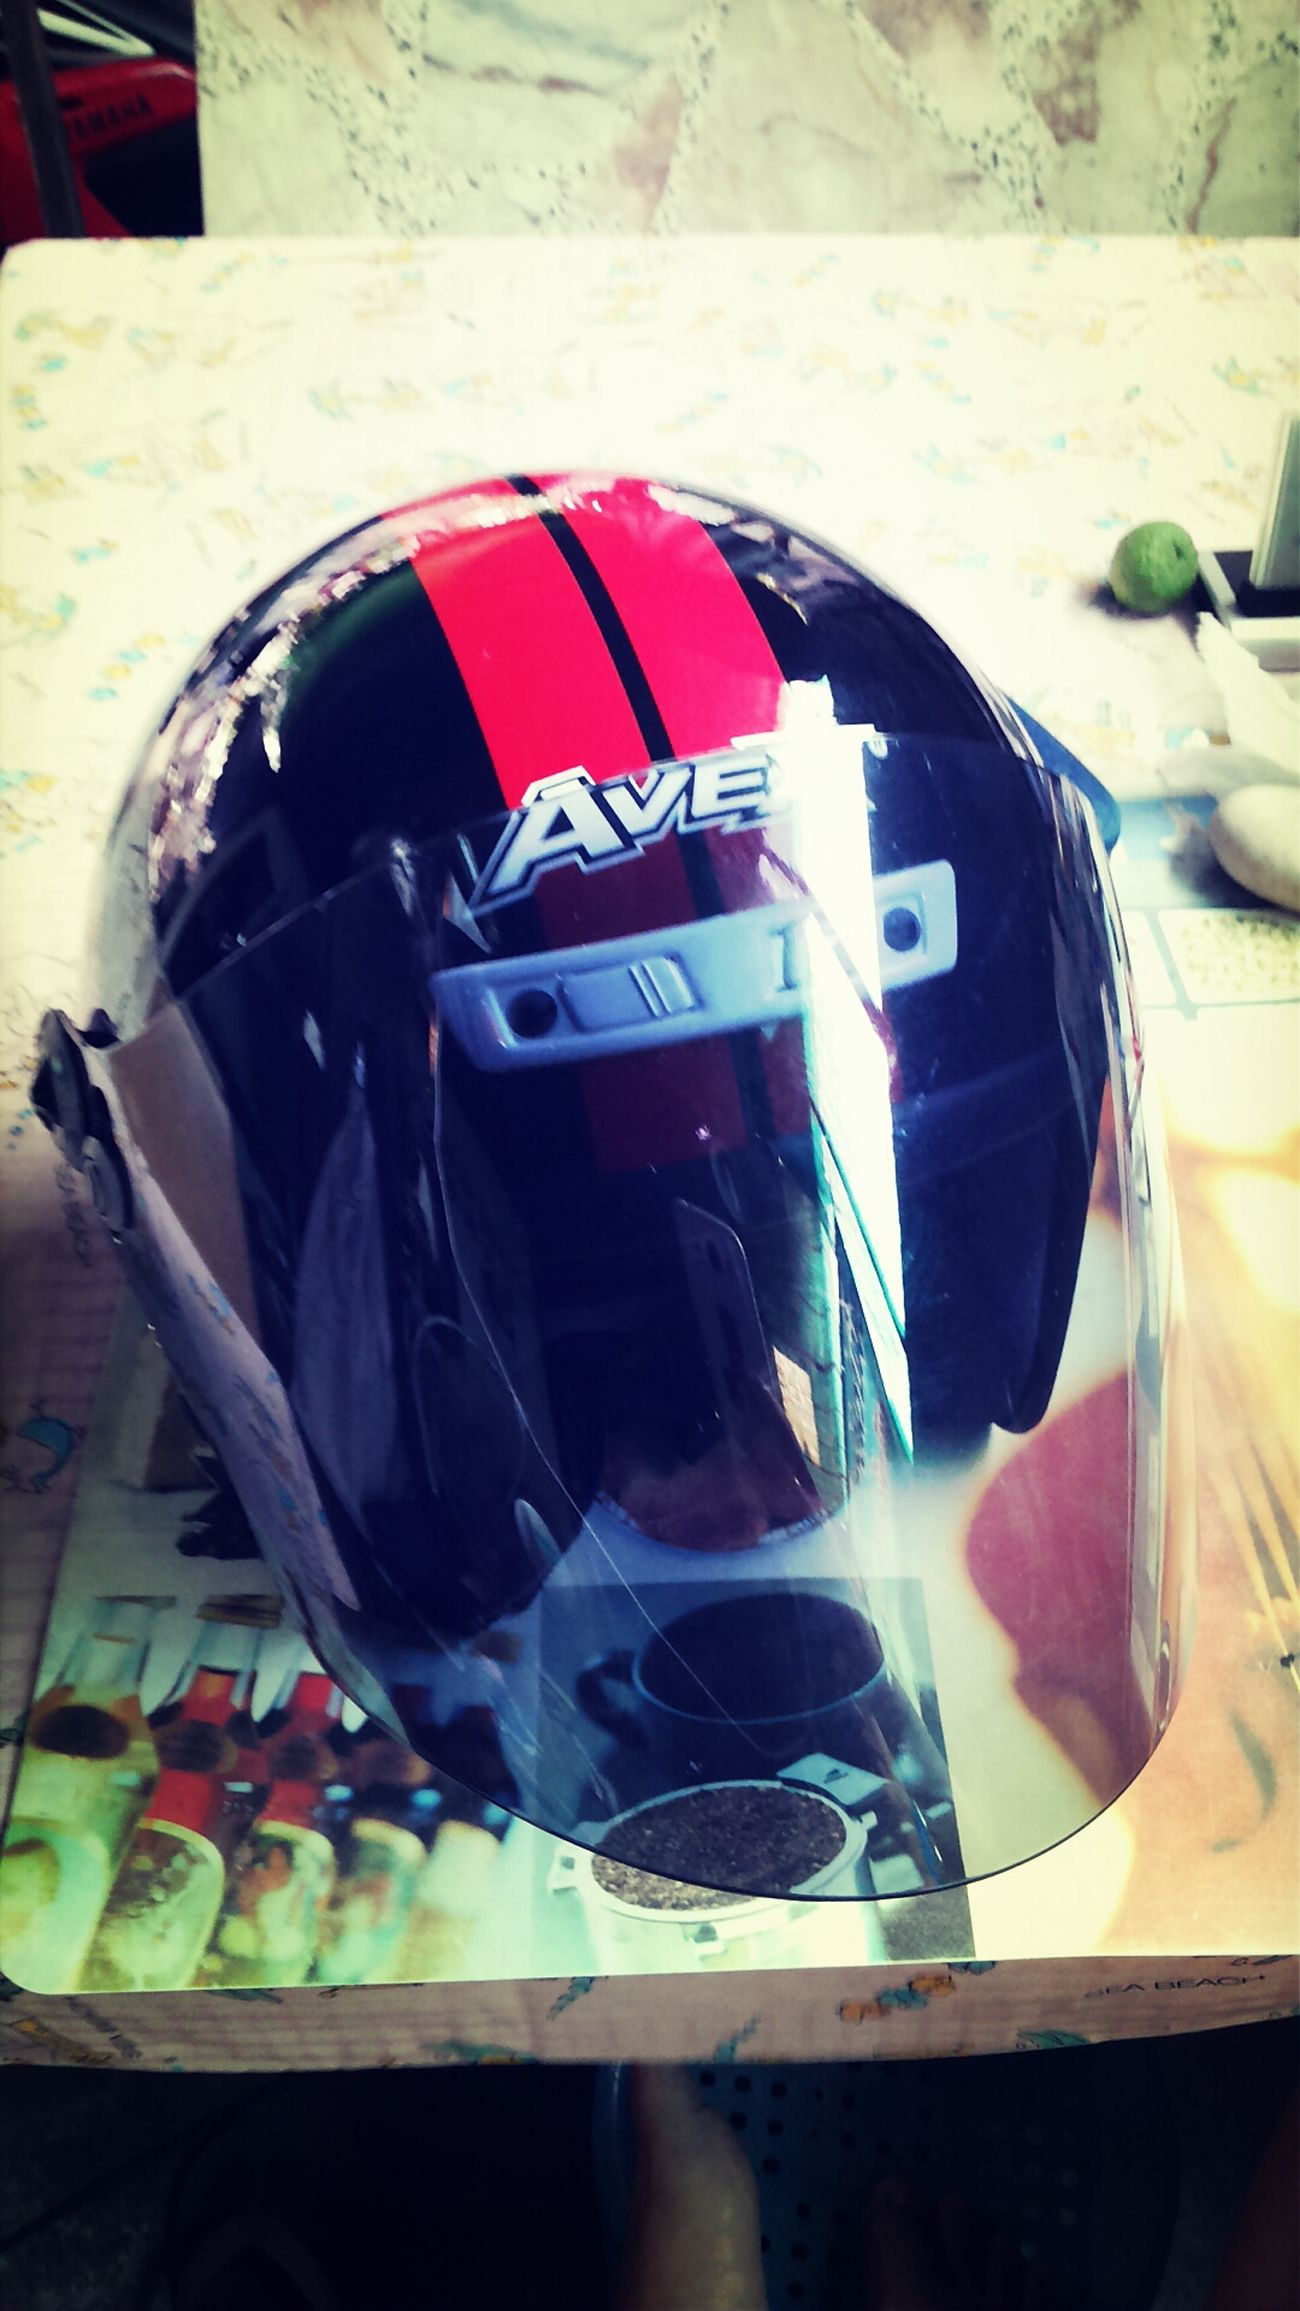 my new helmet Bike Ride Motorcycles Going For A Ride  Starting A Trip